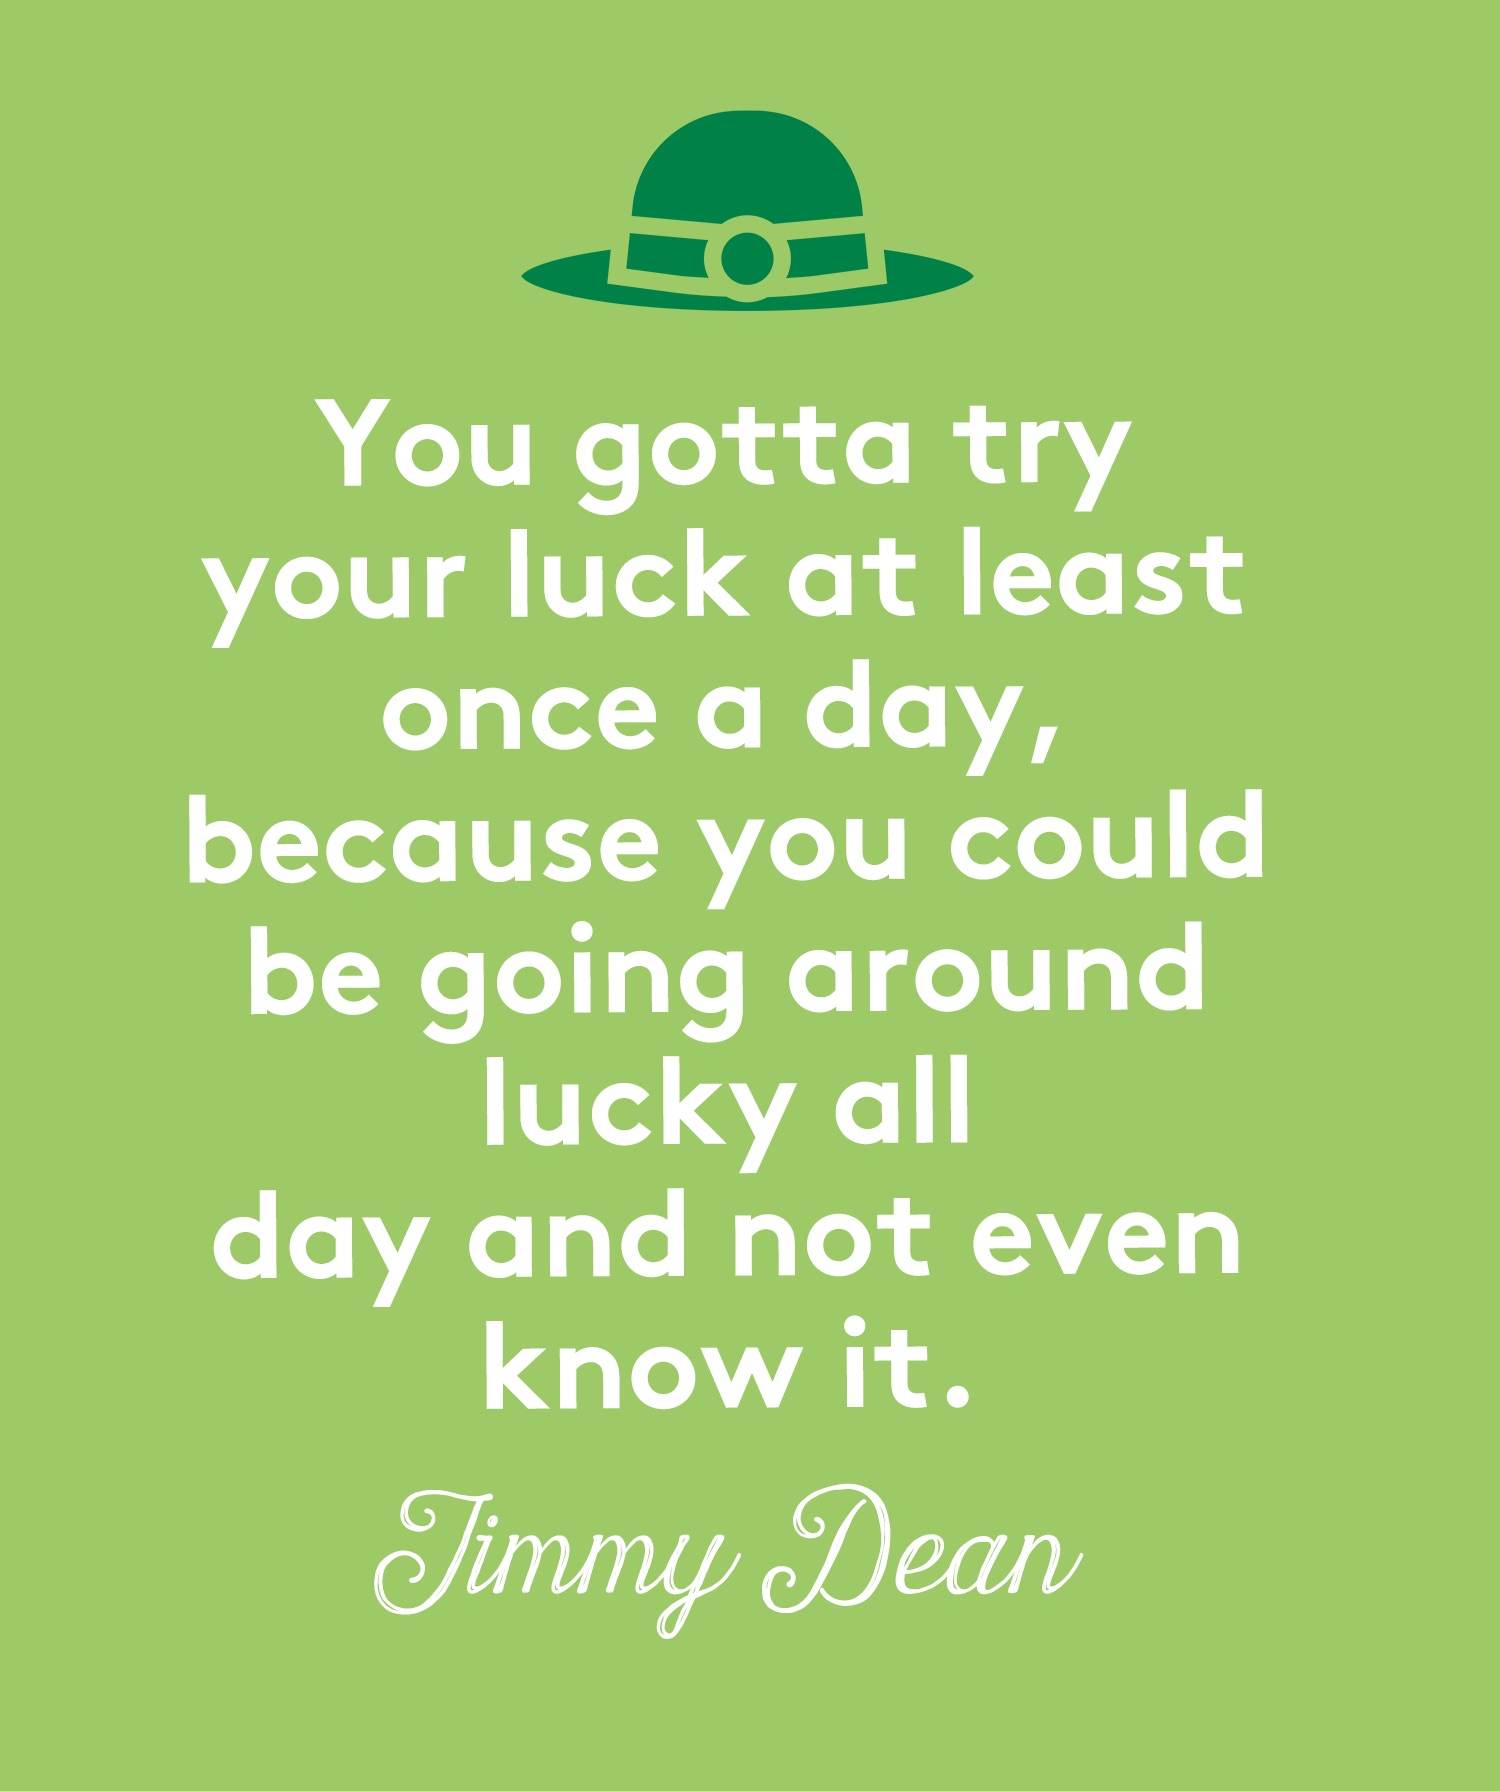 st patricks day quote dean 9 st patrick's day memes and quotes you'll send to everyone real